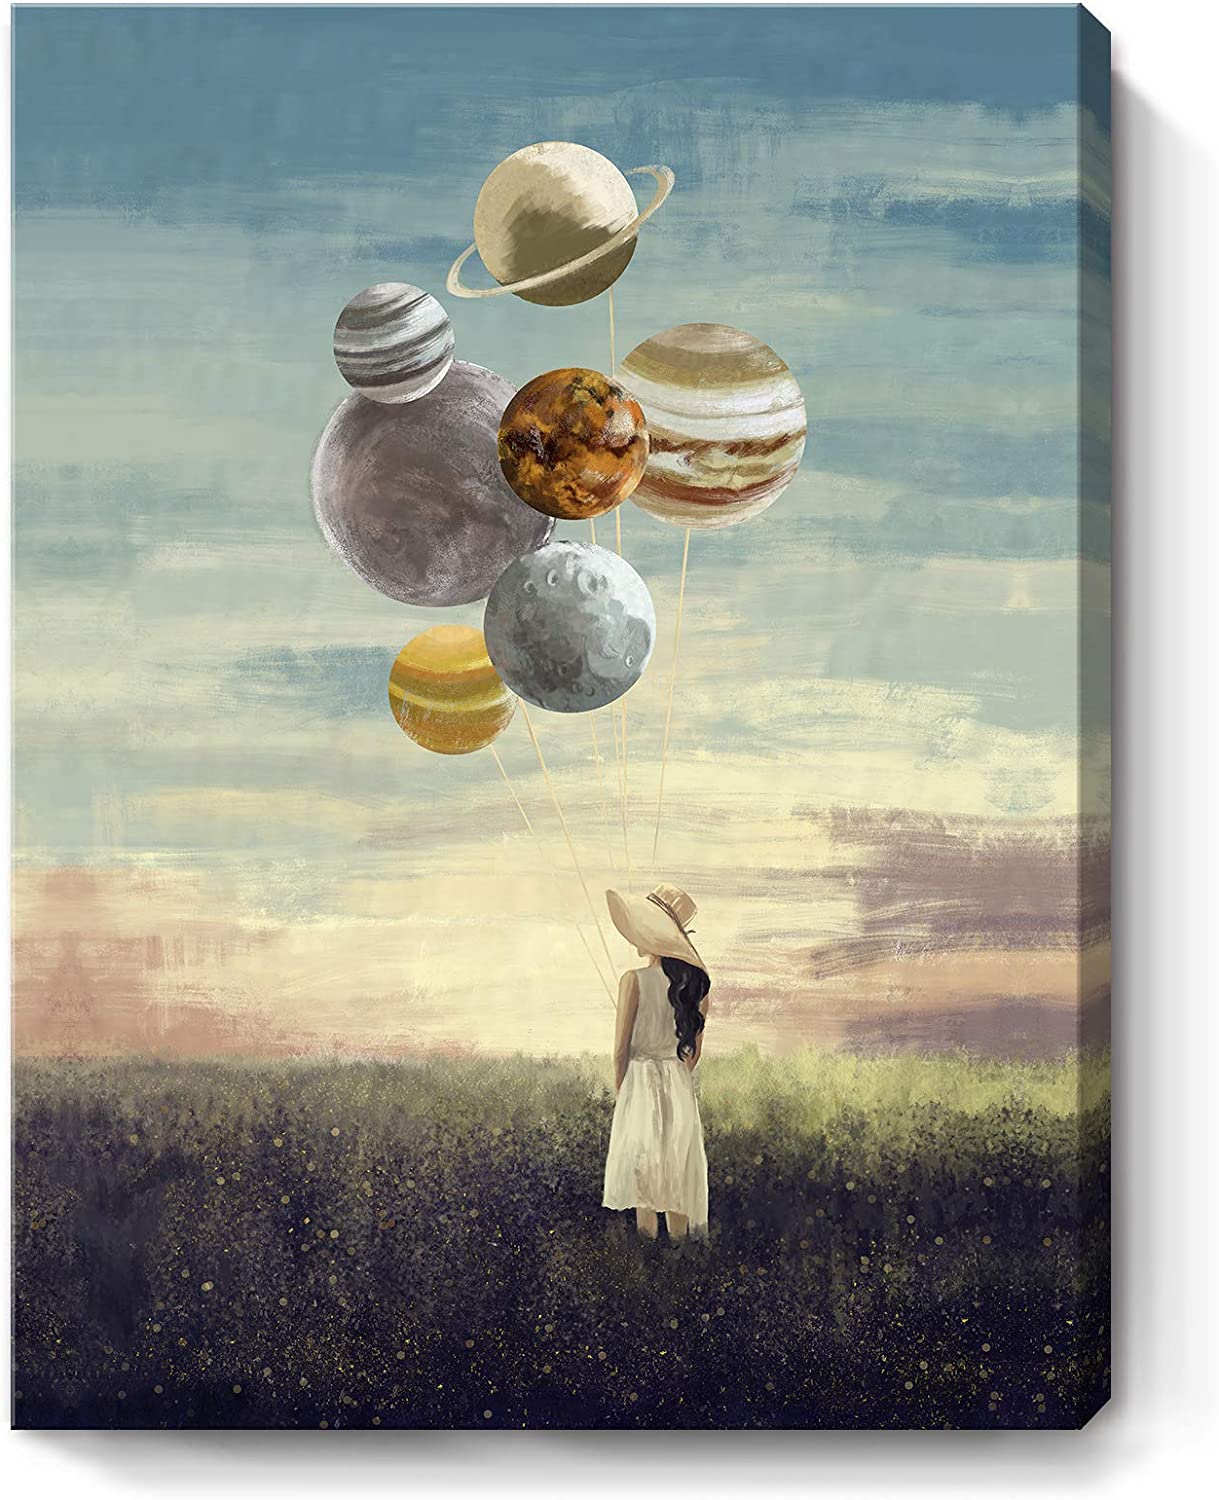 ARTZON Bathroom Decor Wall Art Inspirational Canvas Print Creative Girl Holding Planet Picture Motivational Framed Artwork for Living Bedroom Office Décor